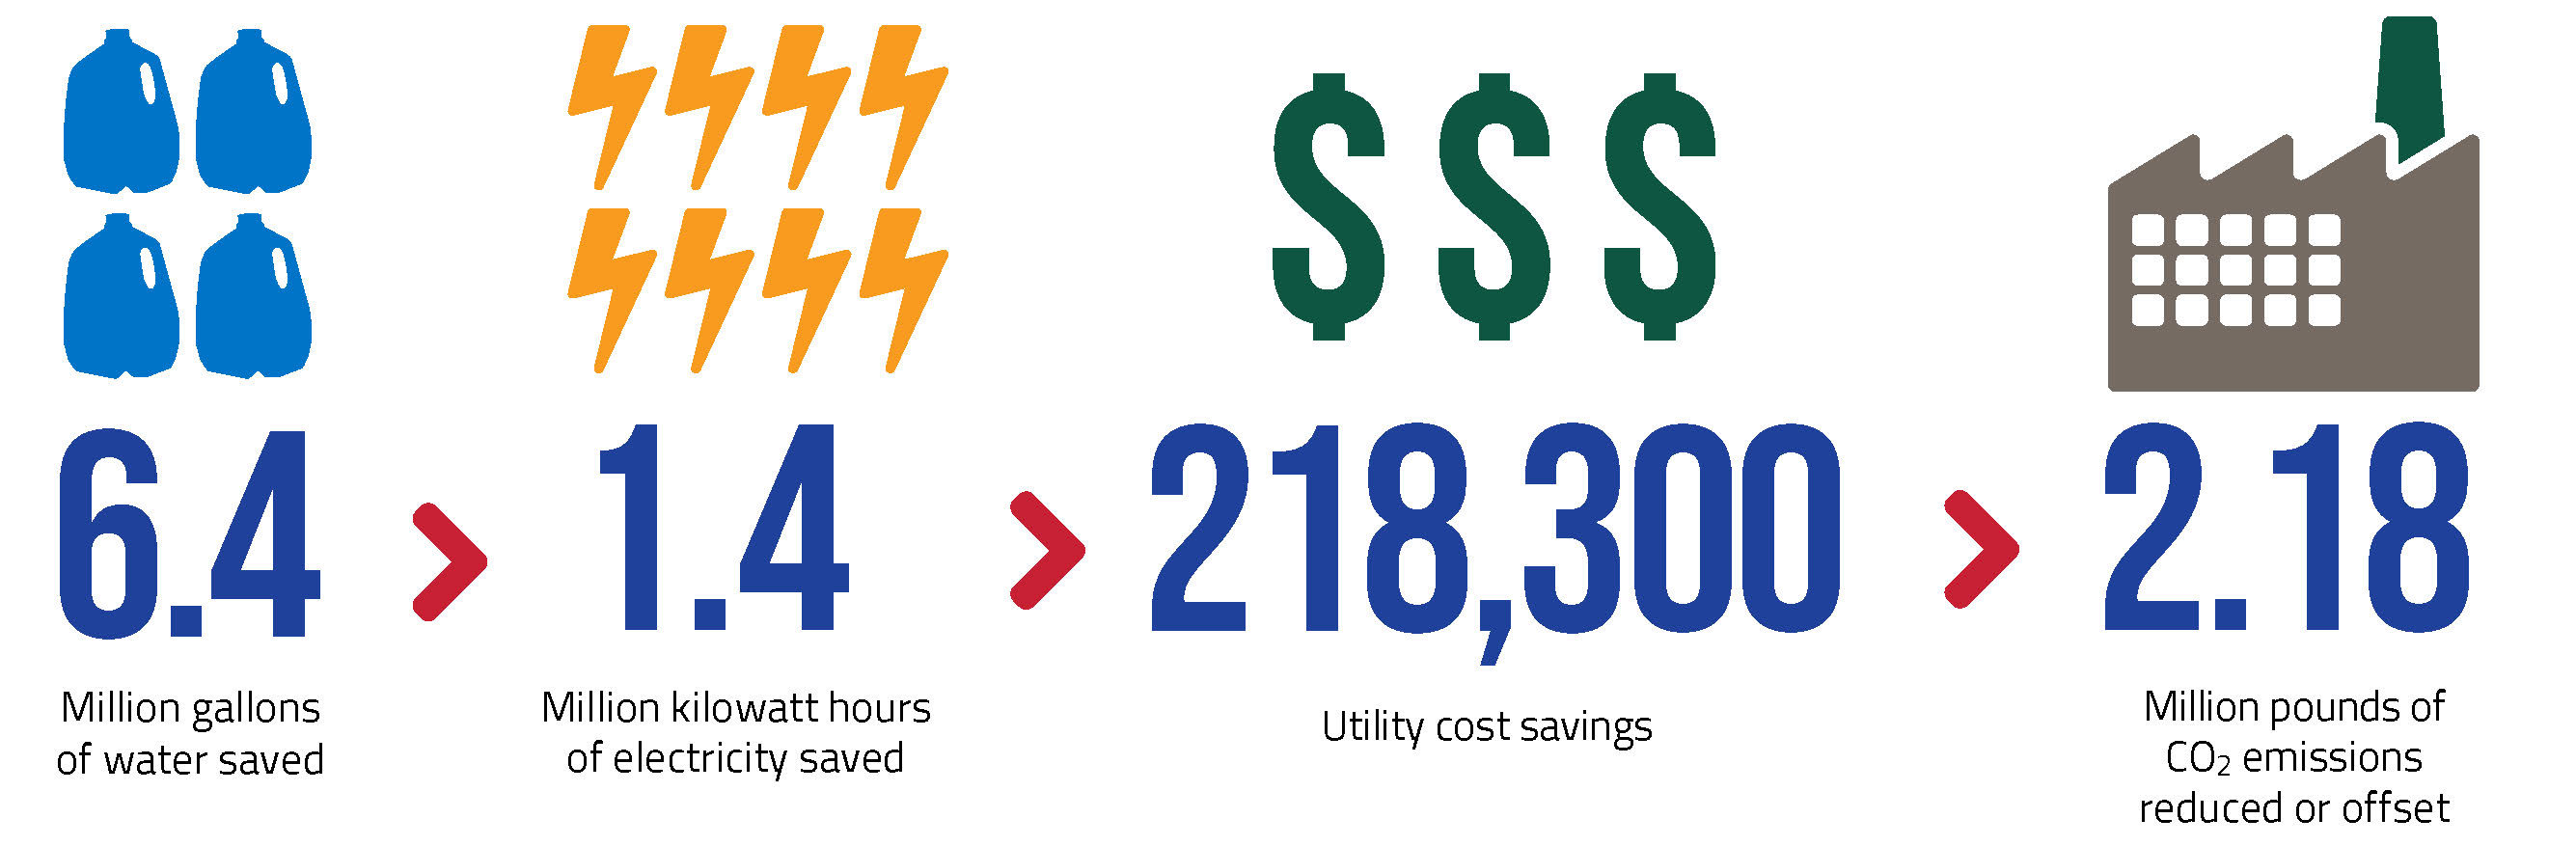 WE-LAB savings infographic 2019